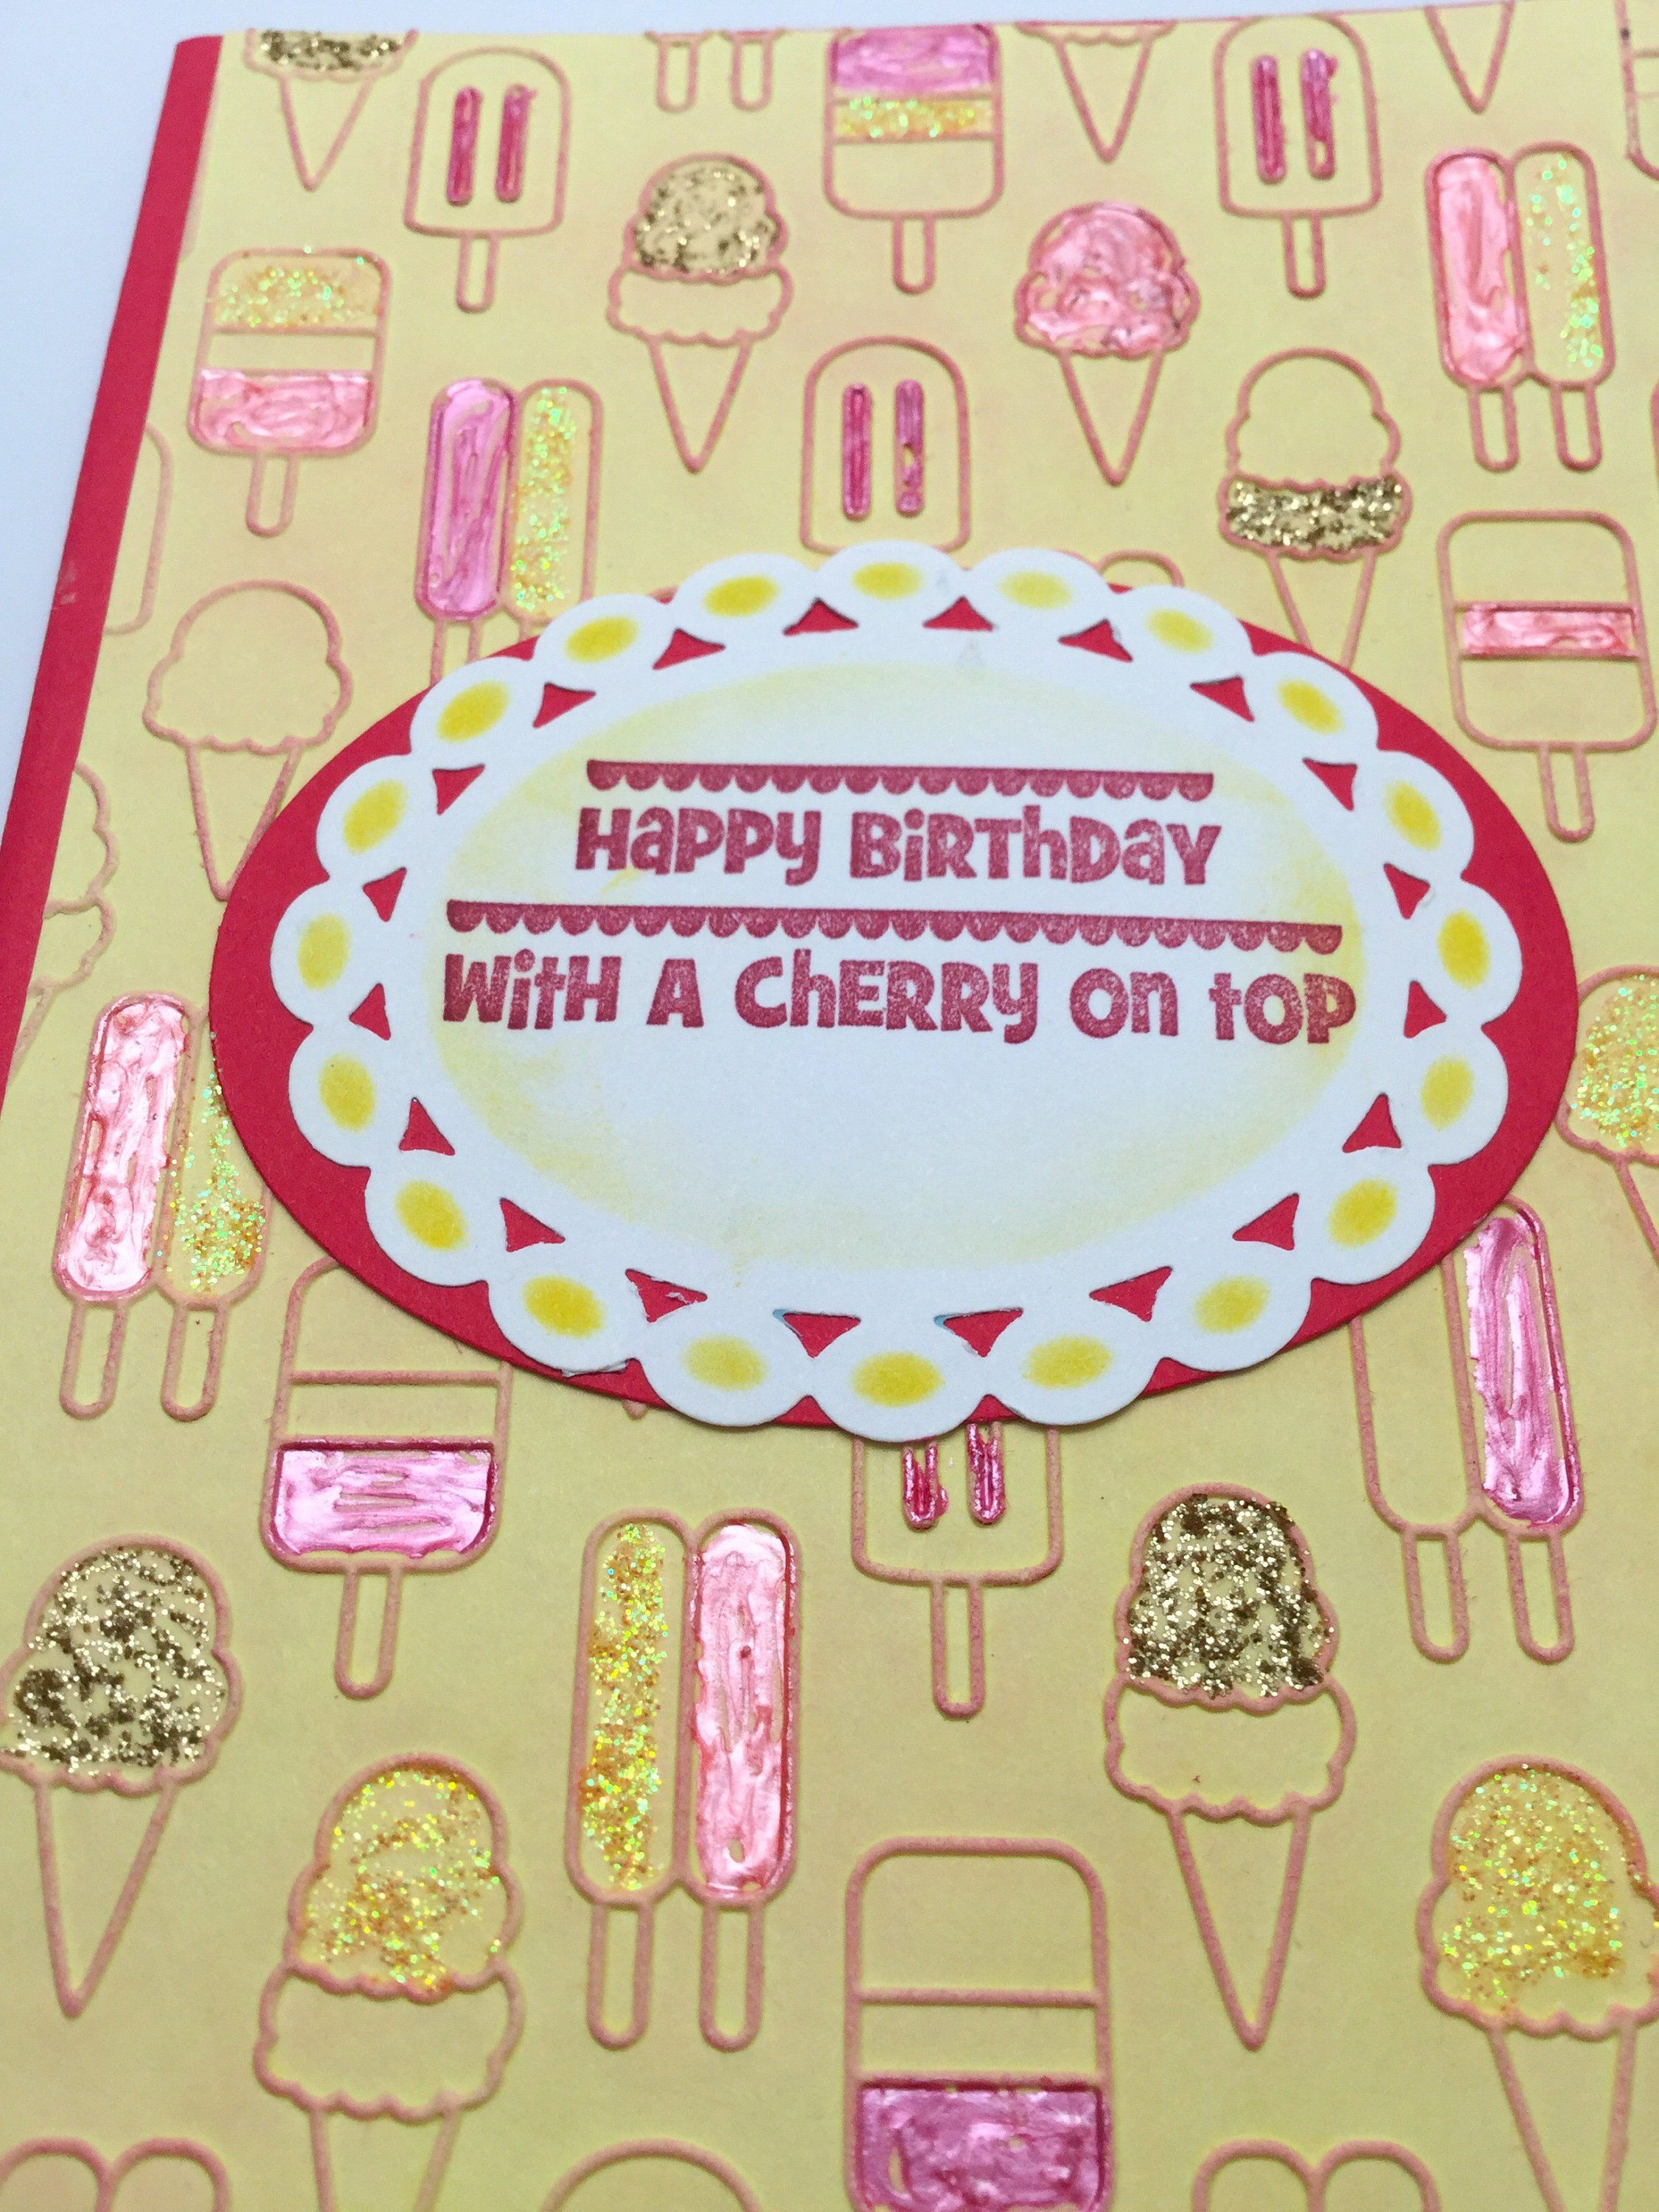 Handmade greeting cards ice cream cones cherry on top large